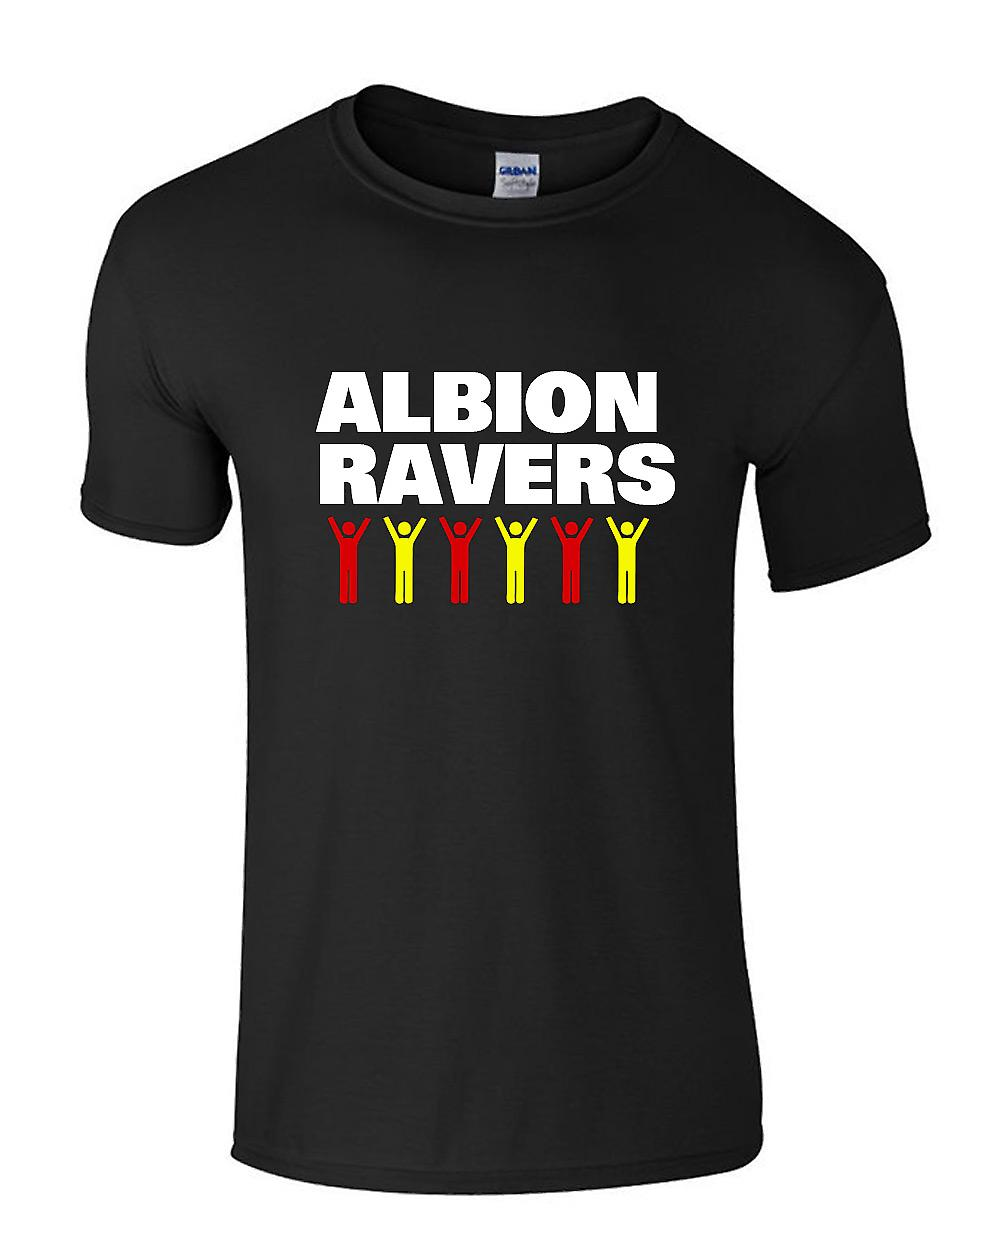 T-shirt Albion Ravers Celebration (Noir)